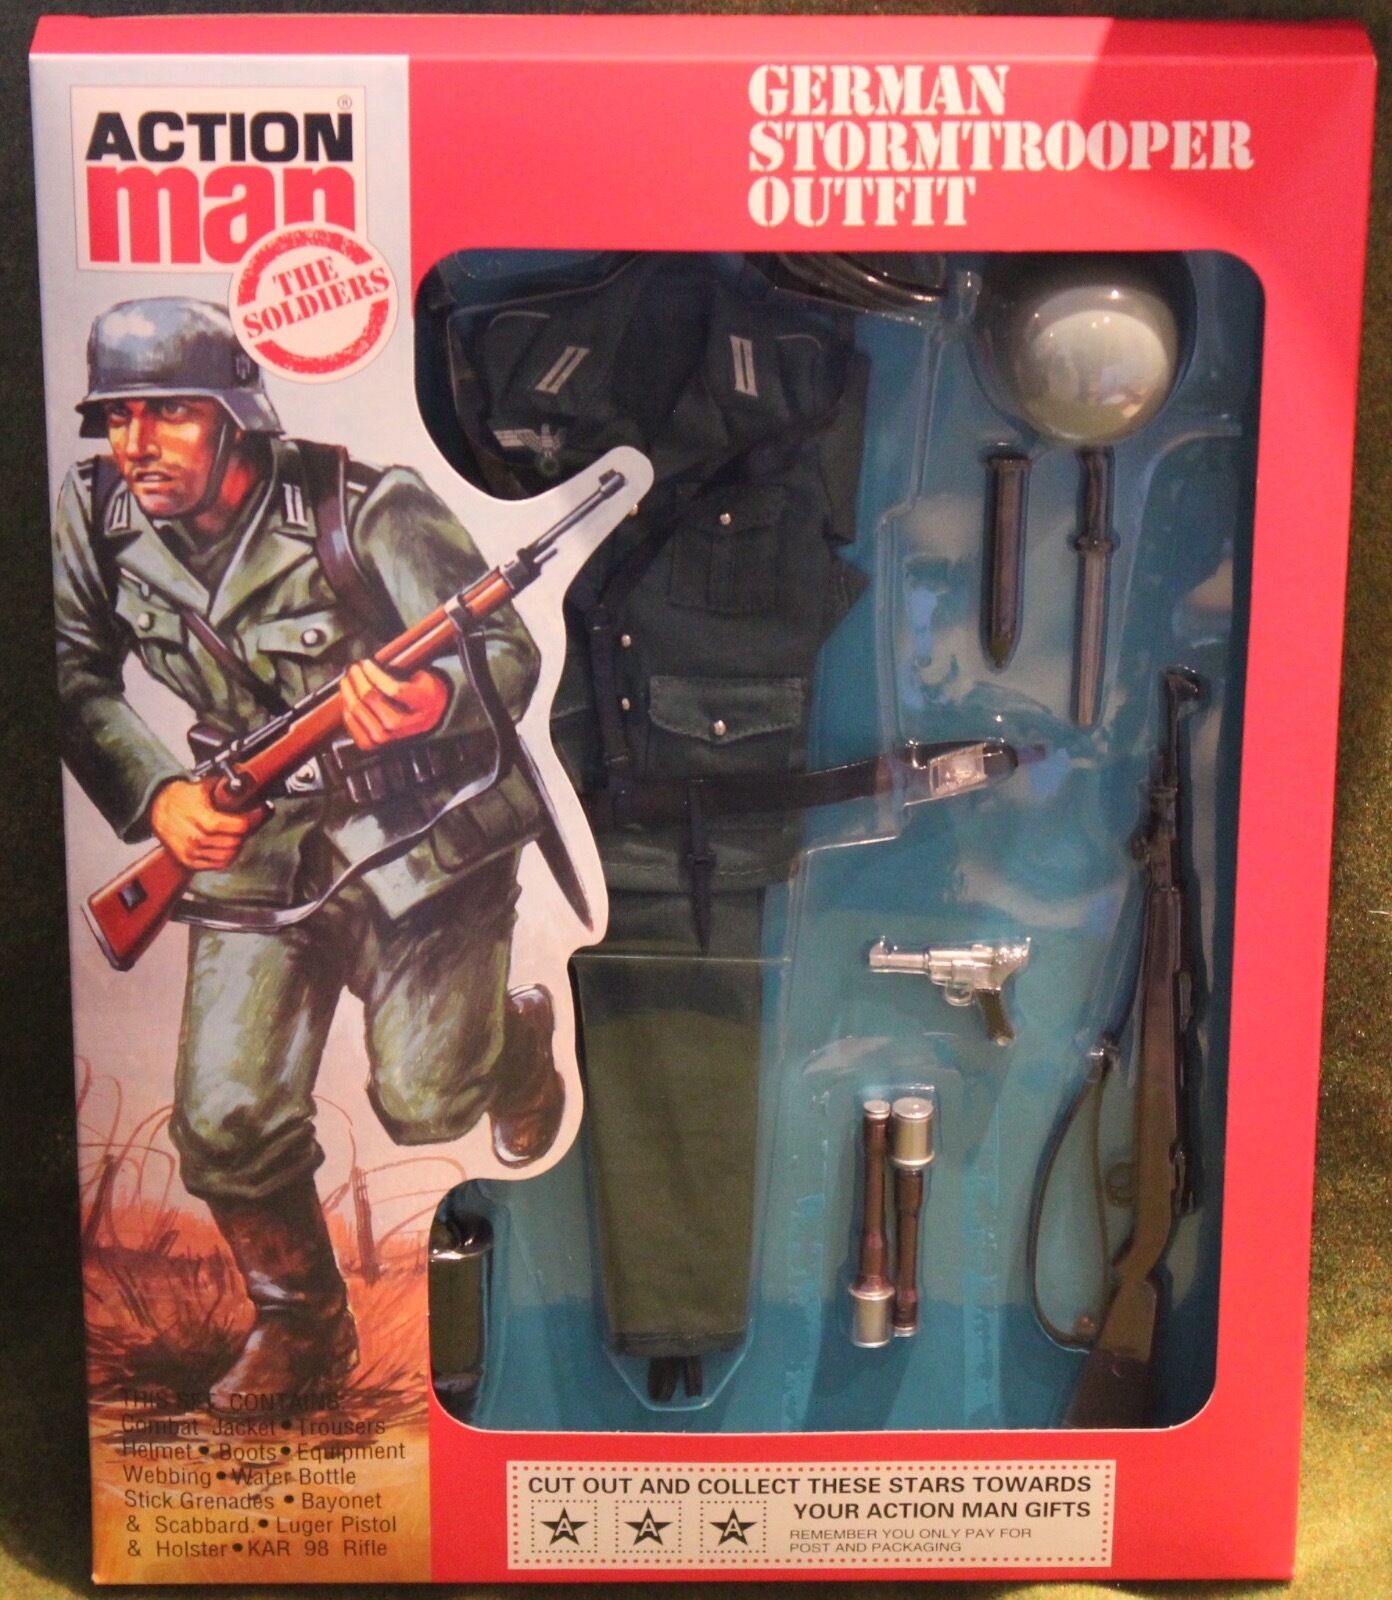 Vintage action man 40th anniversary german stormtrooper uniform carded boxed